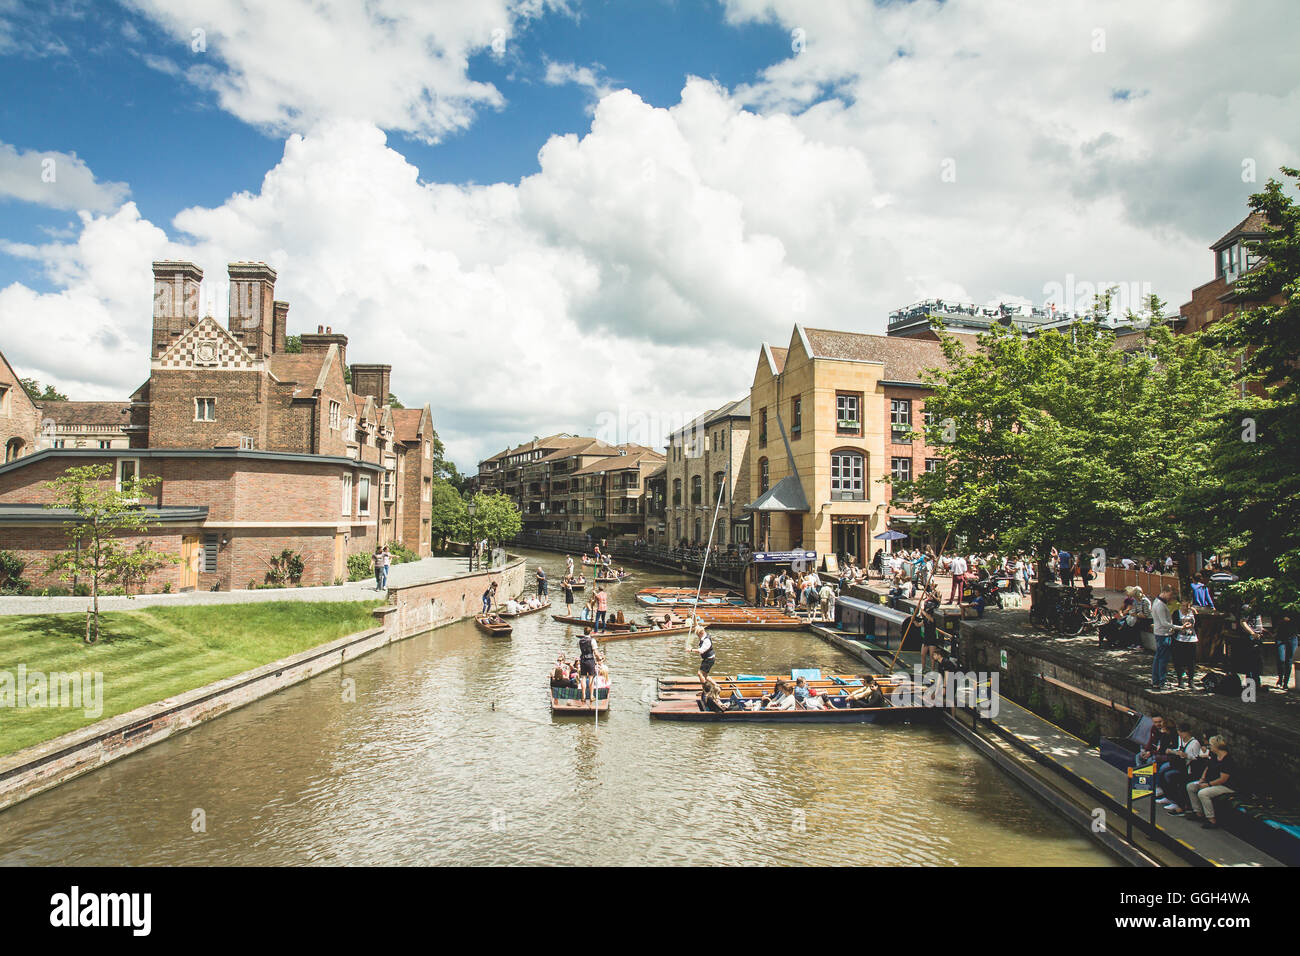 Cambridge view of the River and people having fun punting in a sunny day - Stock Image